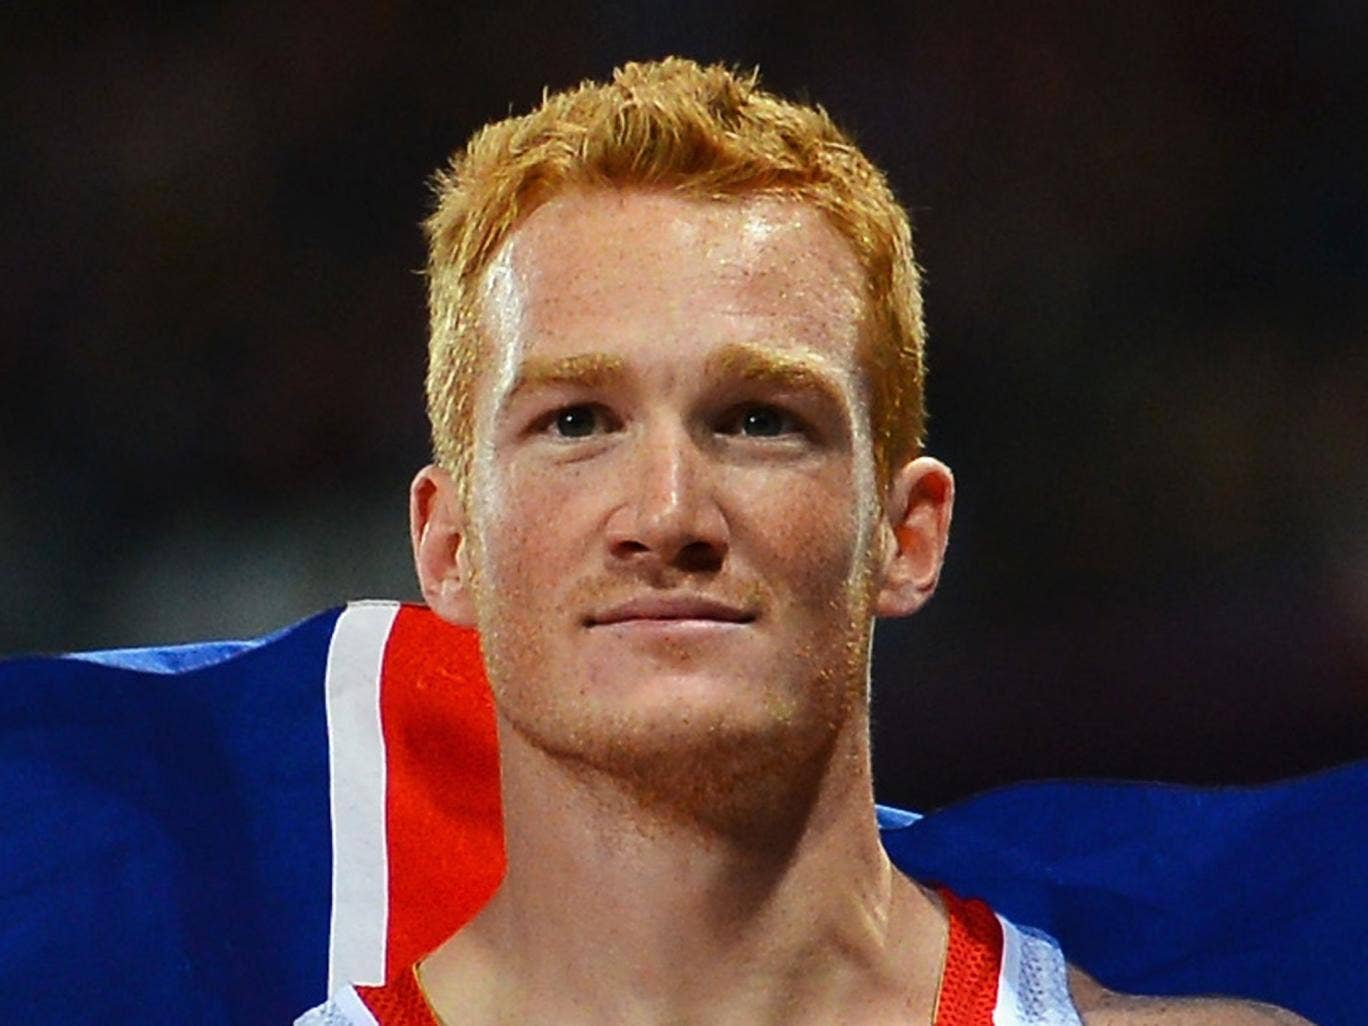 Rutherford smashed the British long jump record